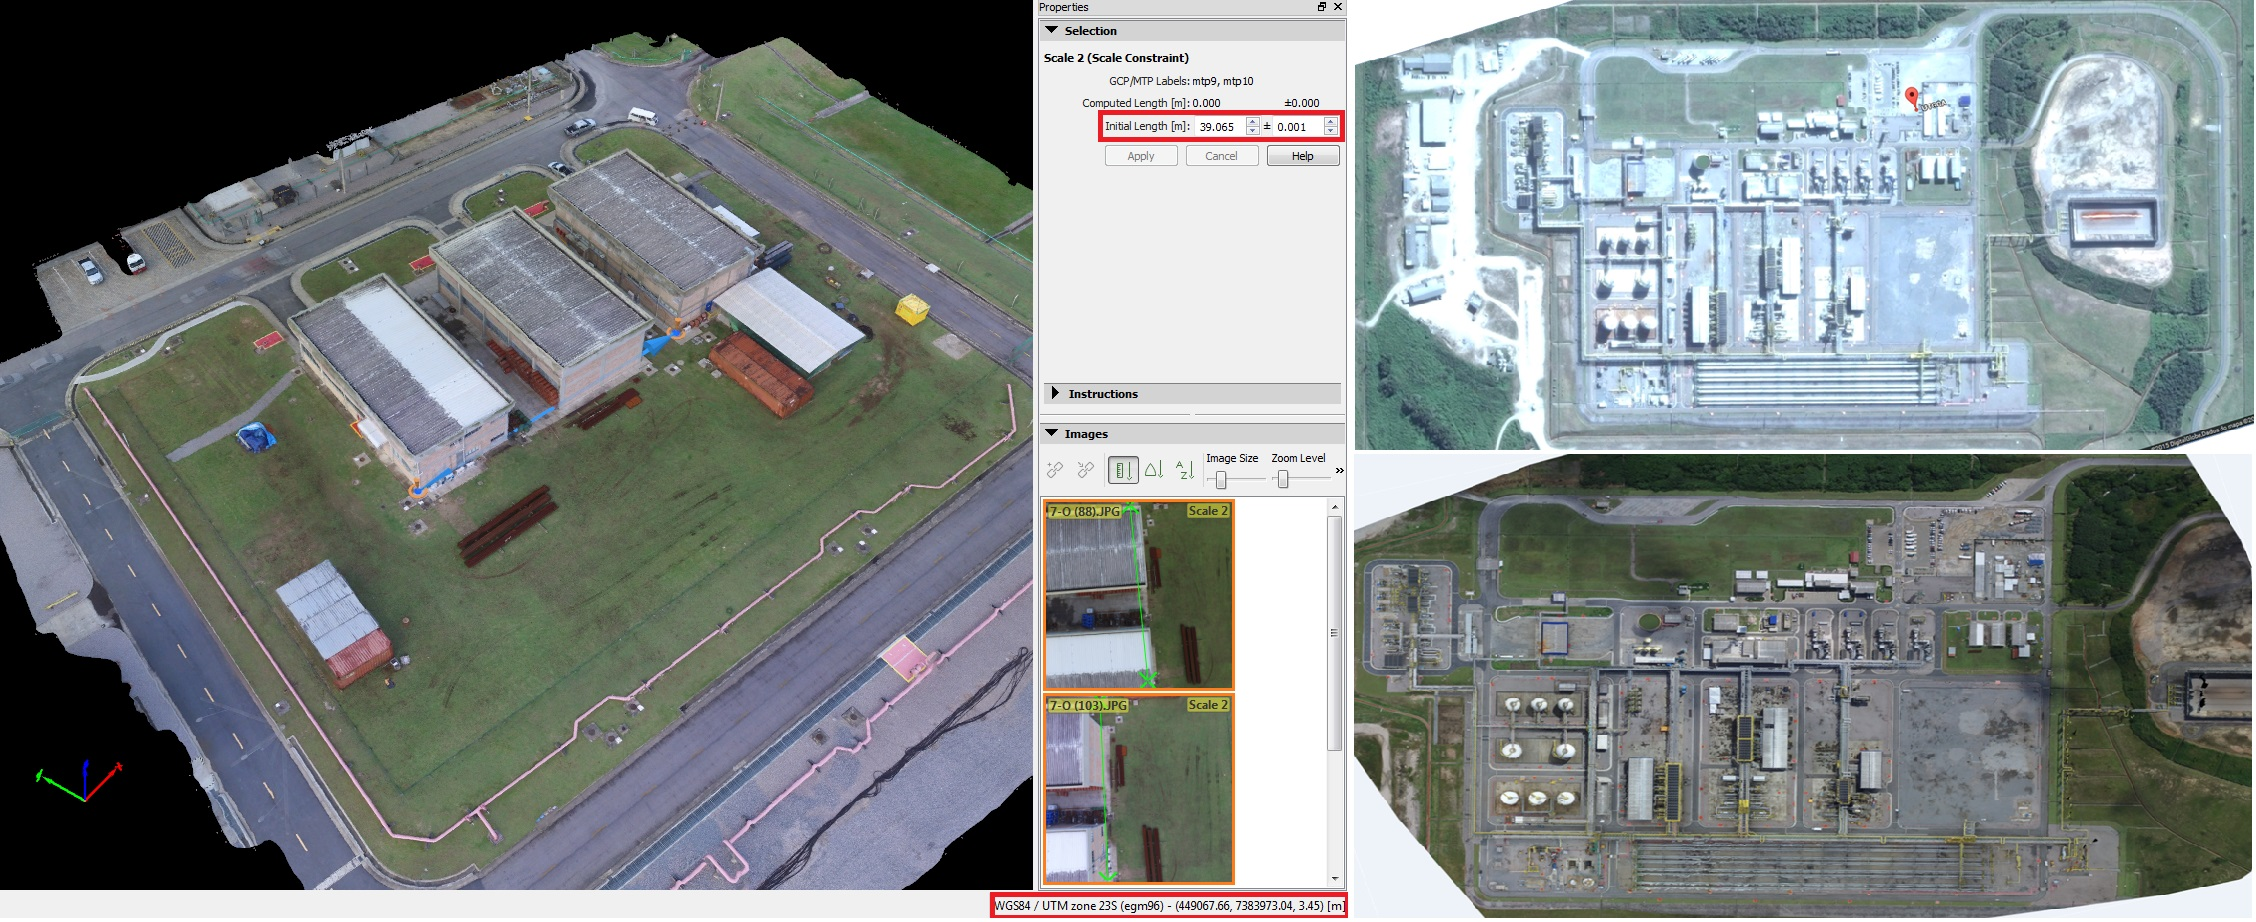 Large-scale industrial surveying & drone photogrammetry | Pix4D